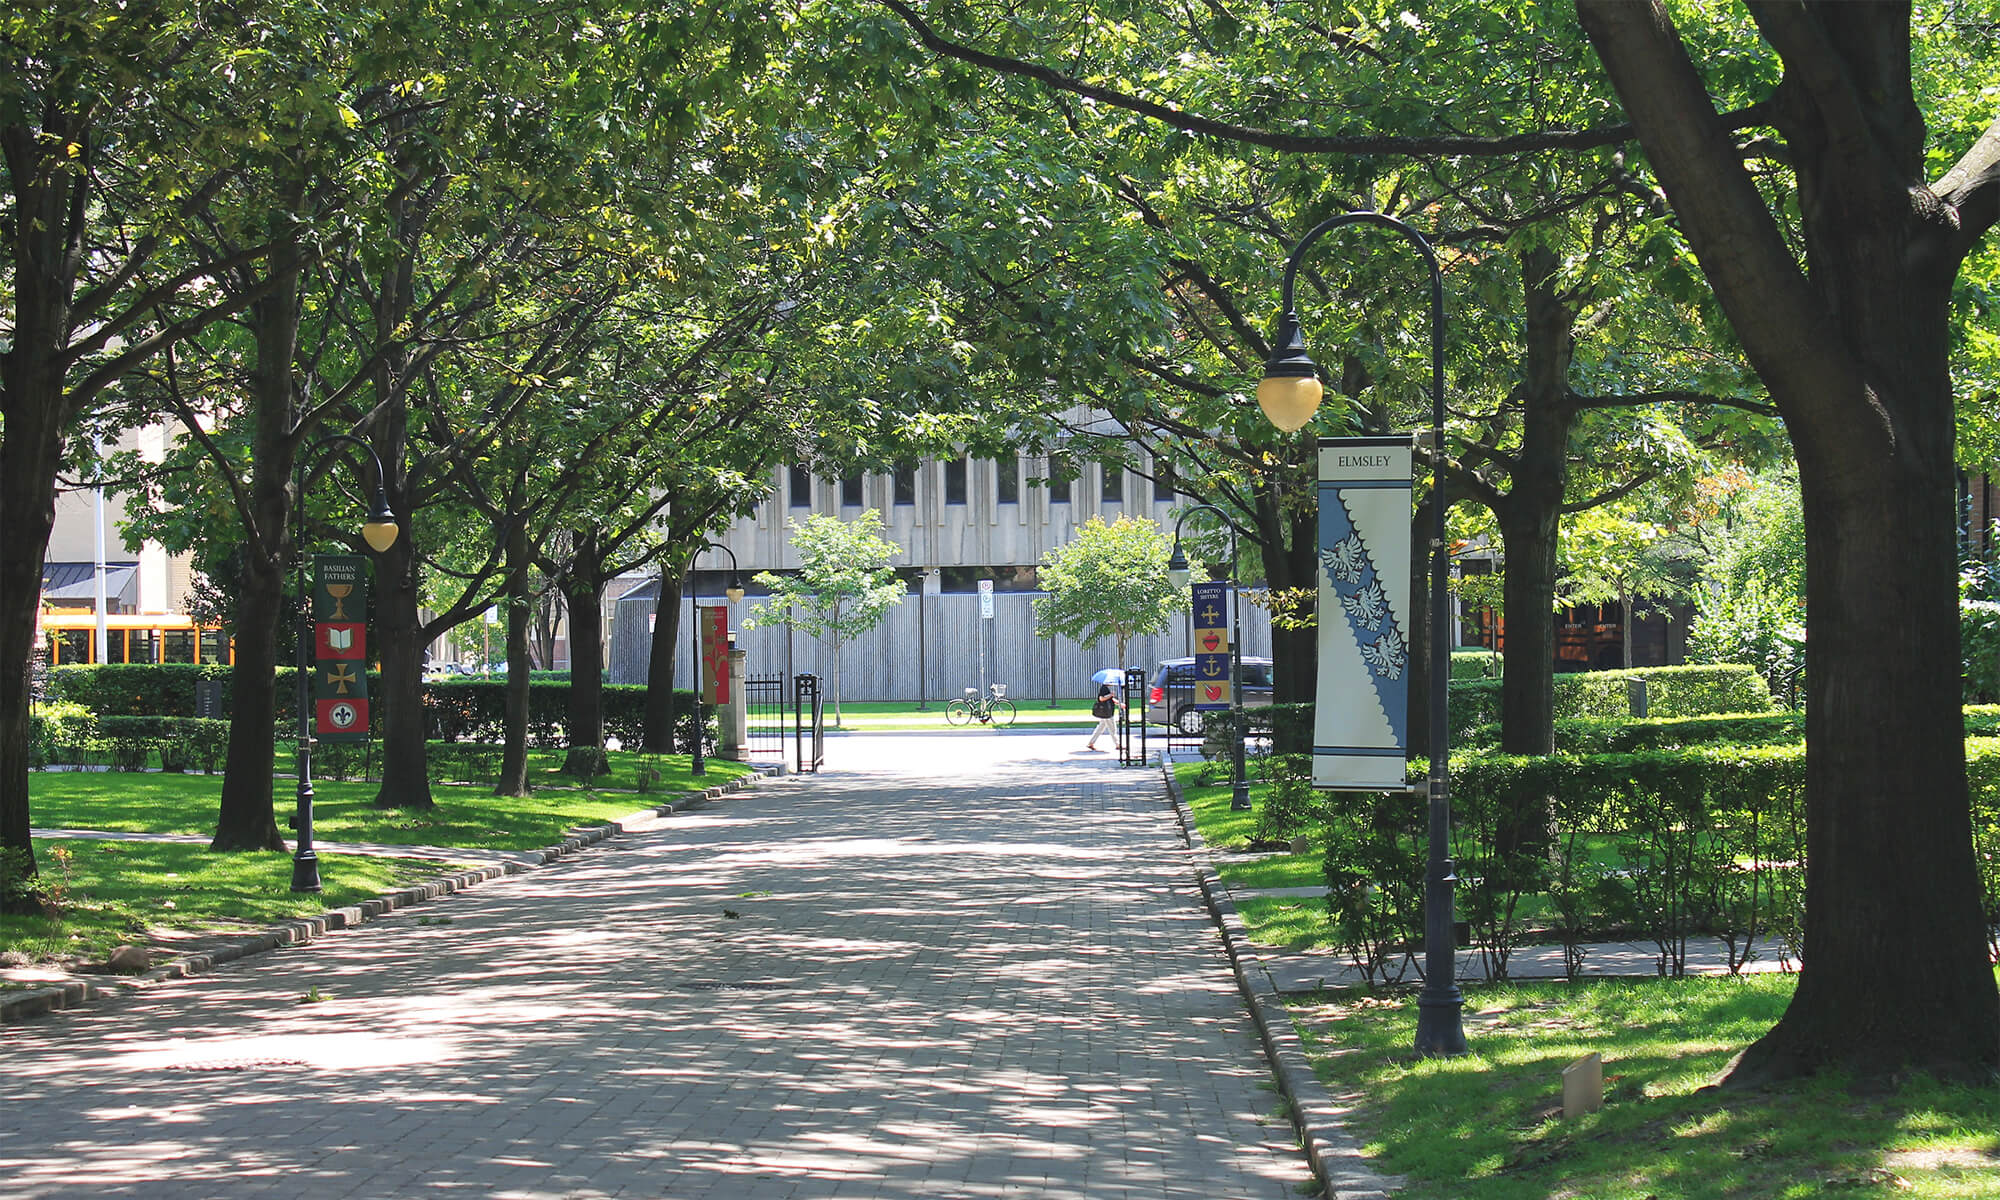 St Michaels Campus - The image depicts a tree lined street with sun coming through the canopy of trees.